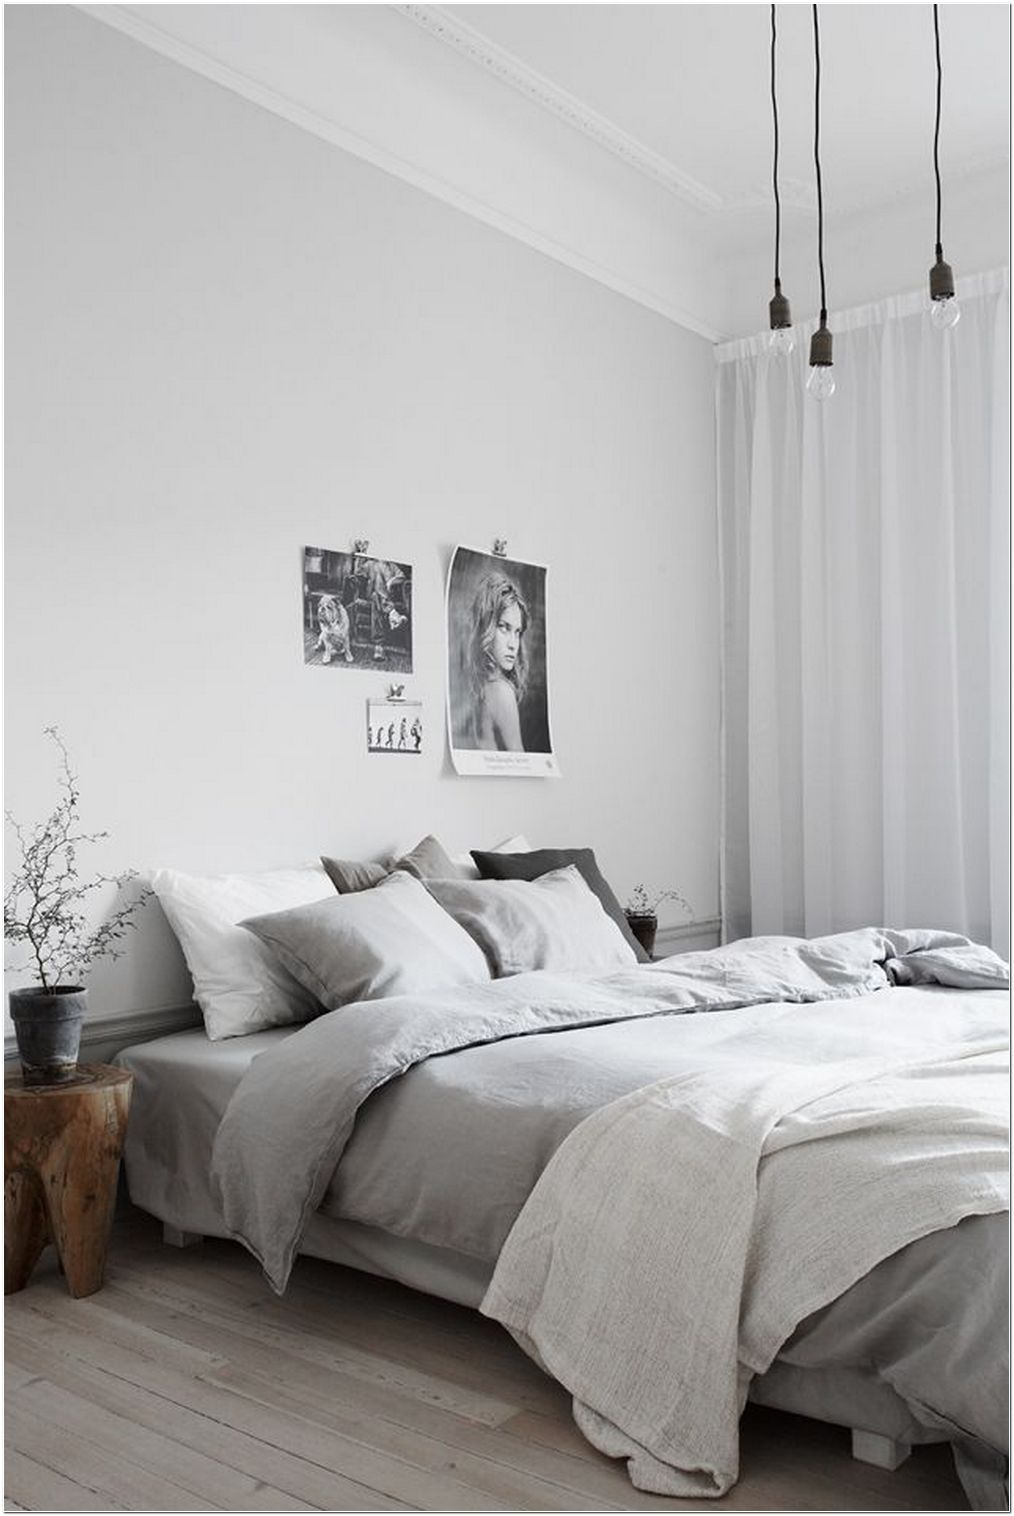 75 Grey Bedroom Ideas From The Super Glam To The Ultra Modern 43